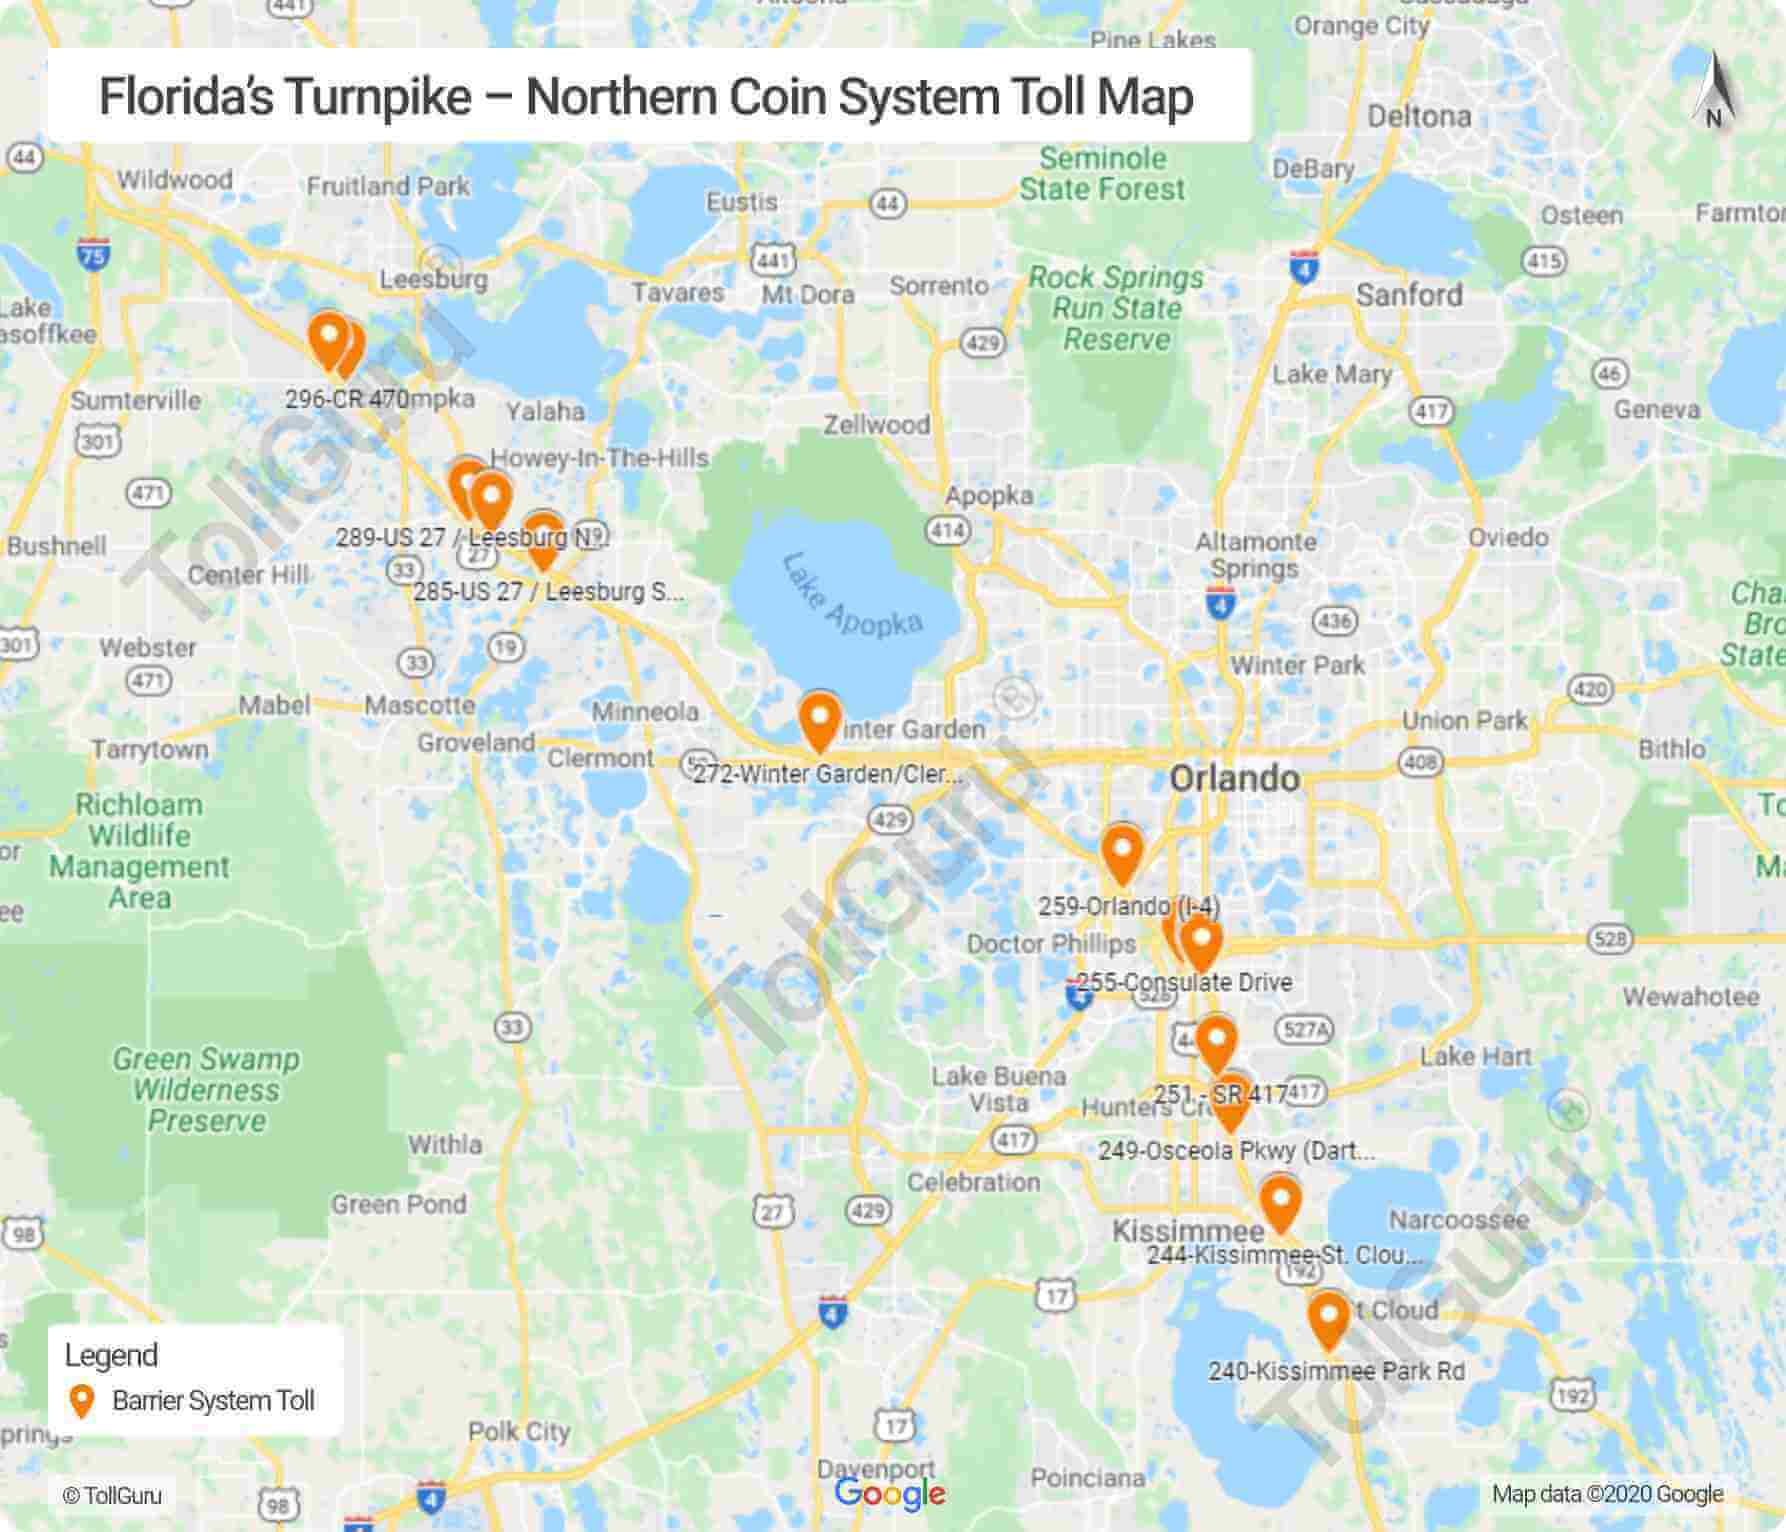 Map of toll booths on Florida Turnpike-Northern Coin System including I-4, I-75 and I-95